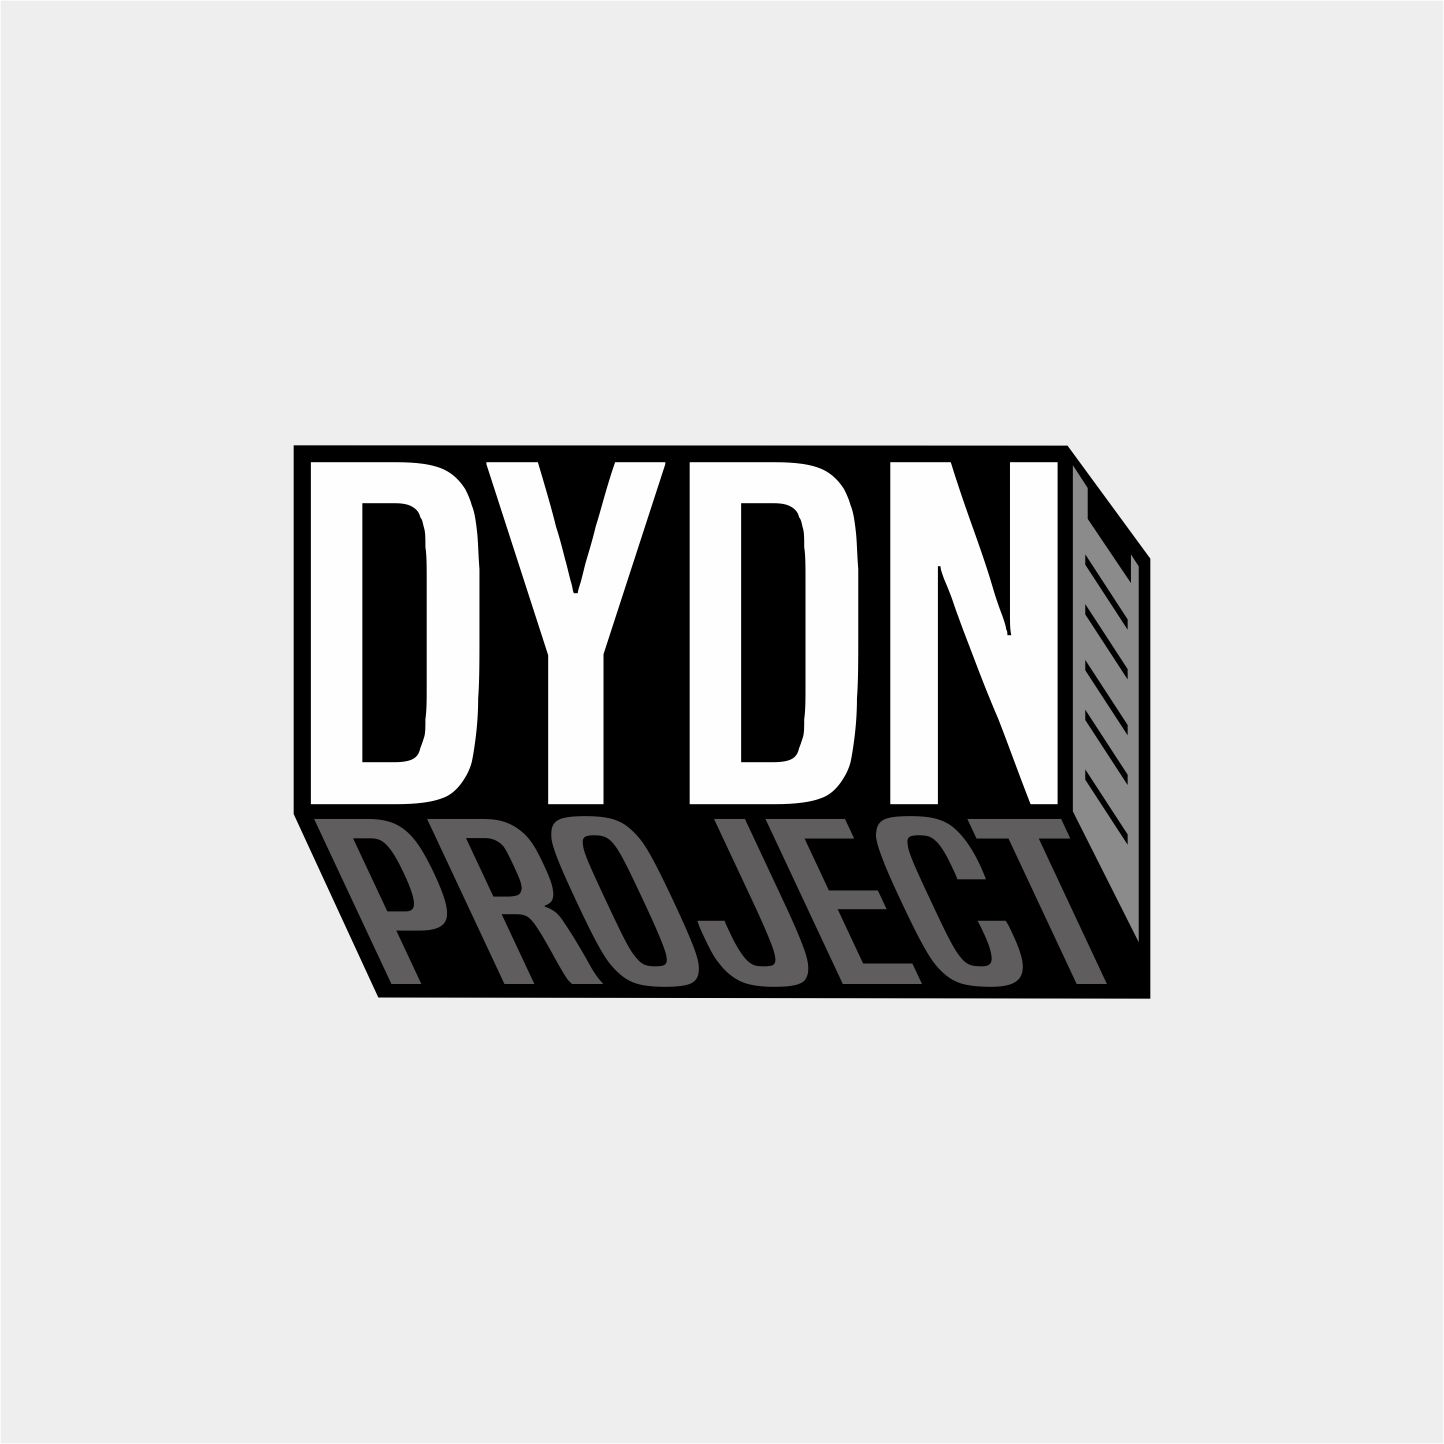 dydn.project's profile picture